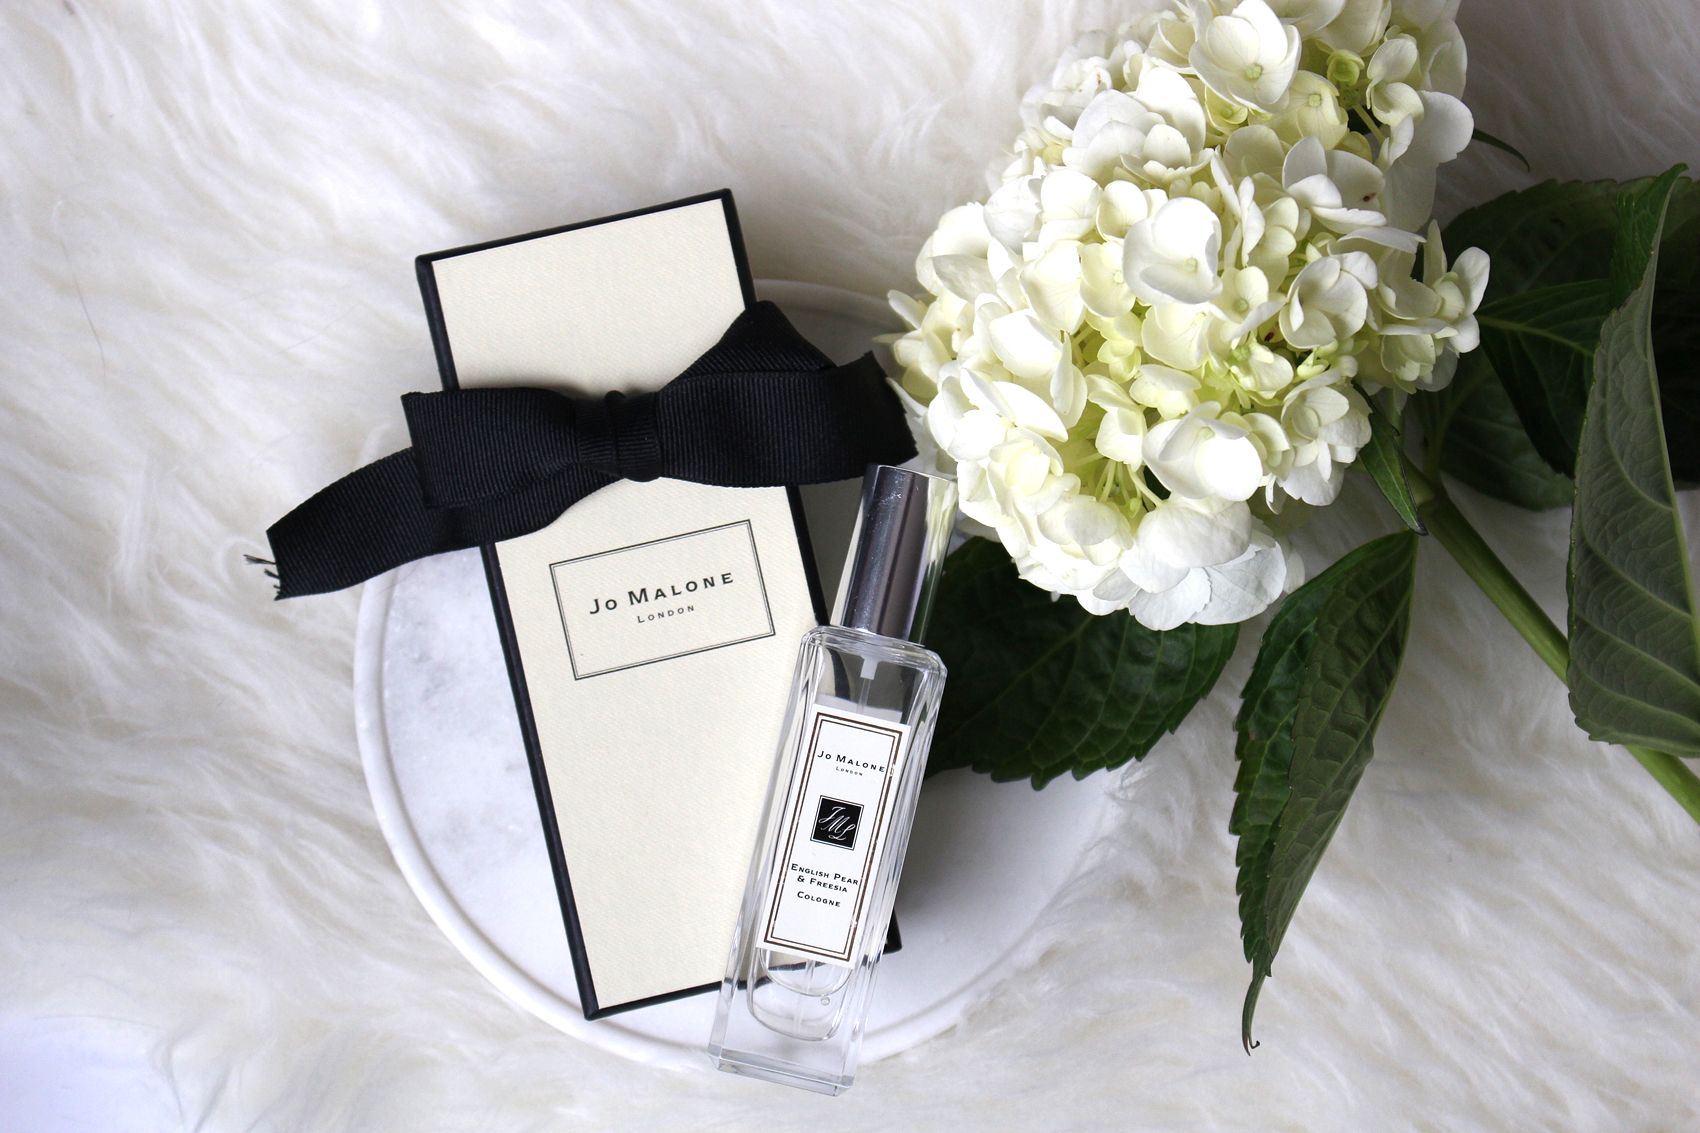 Jo Malone  travel sized cologne in English Pear & Freesia.